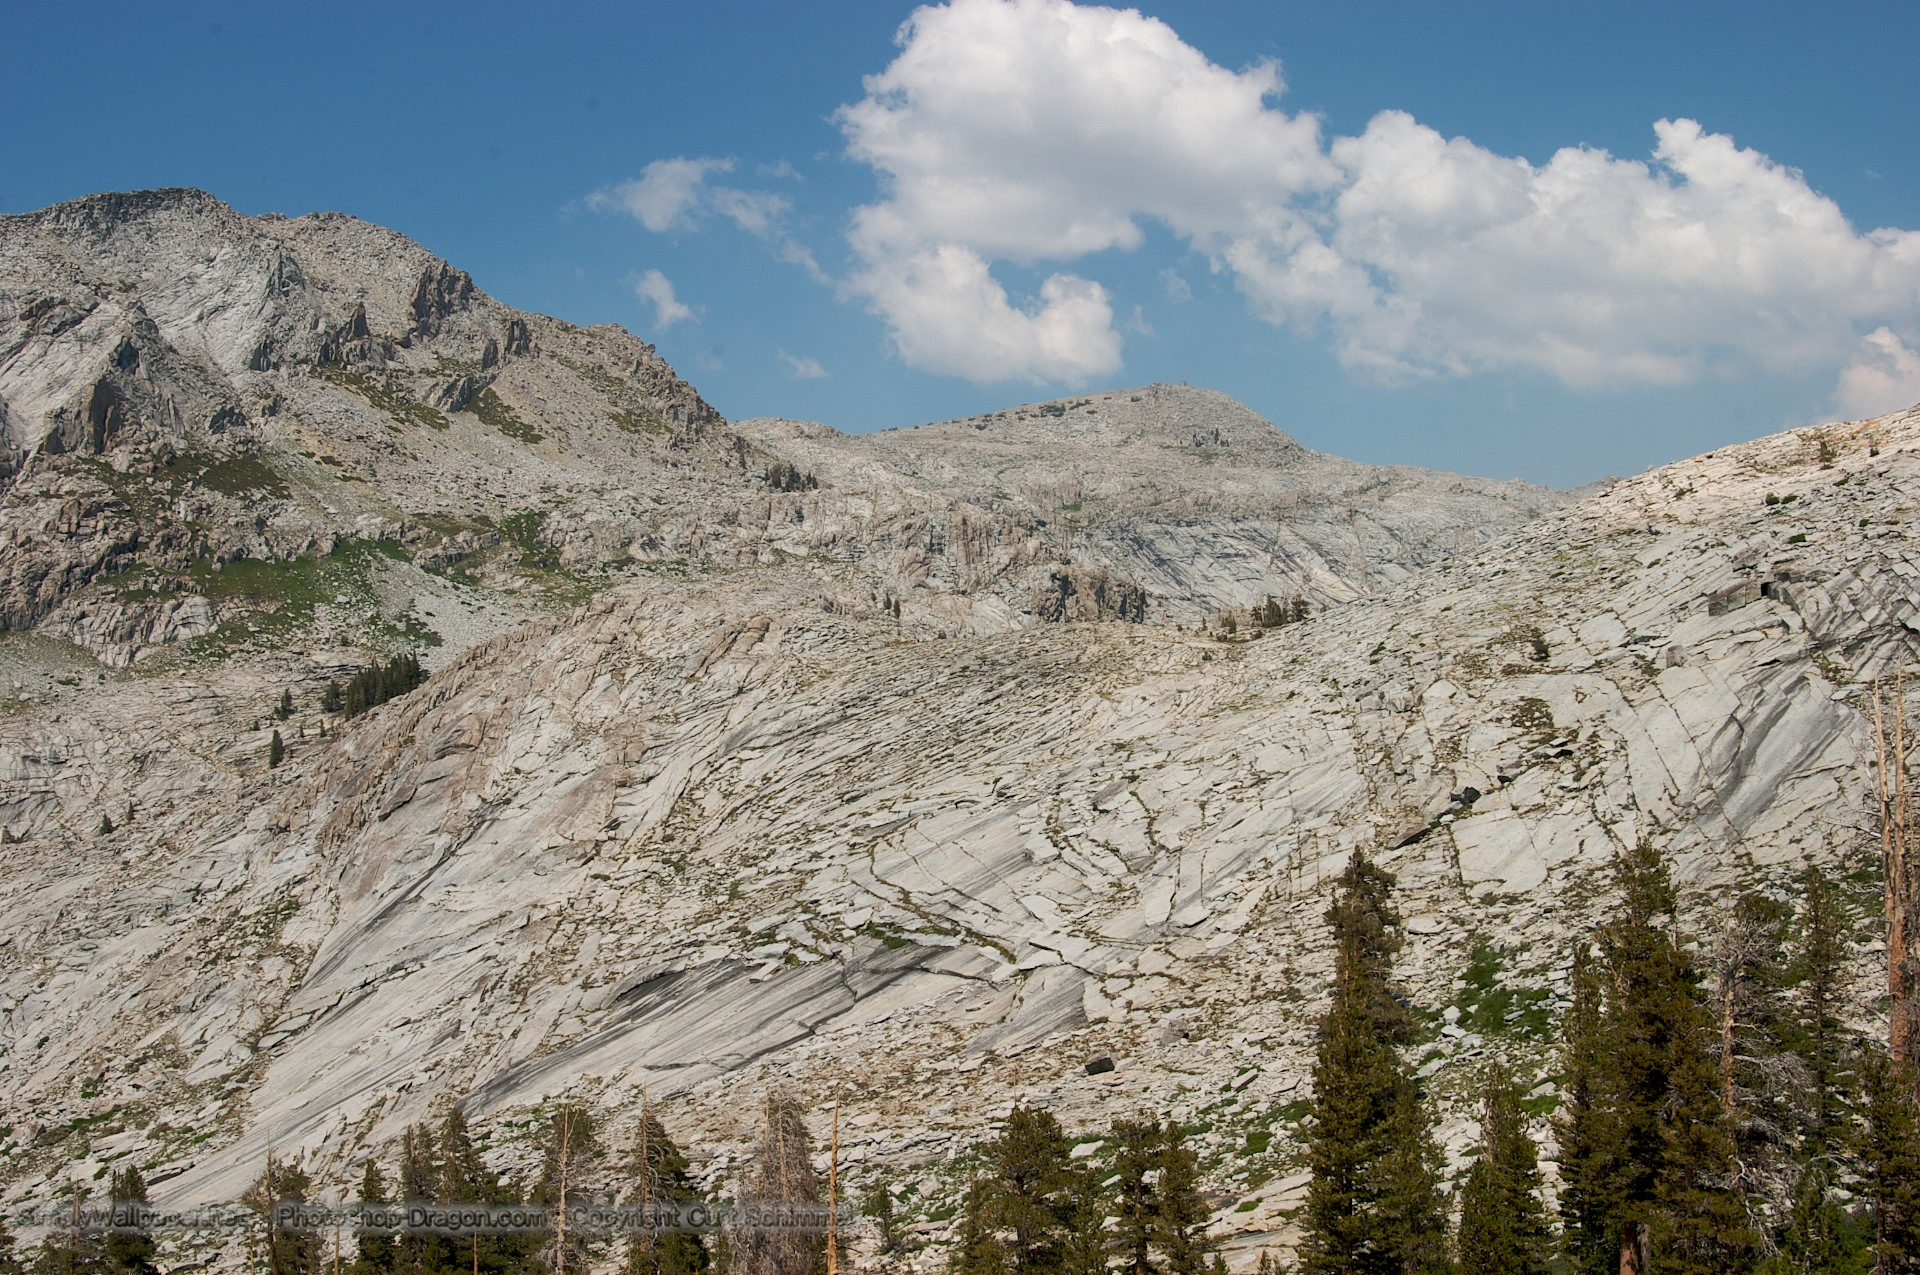 High Peaks in Sequoia National Park Wallpaper 1920x1275